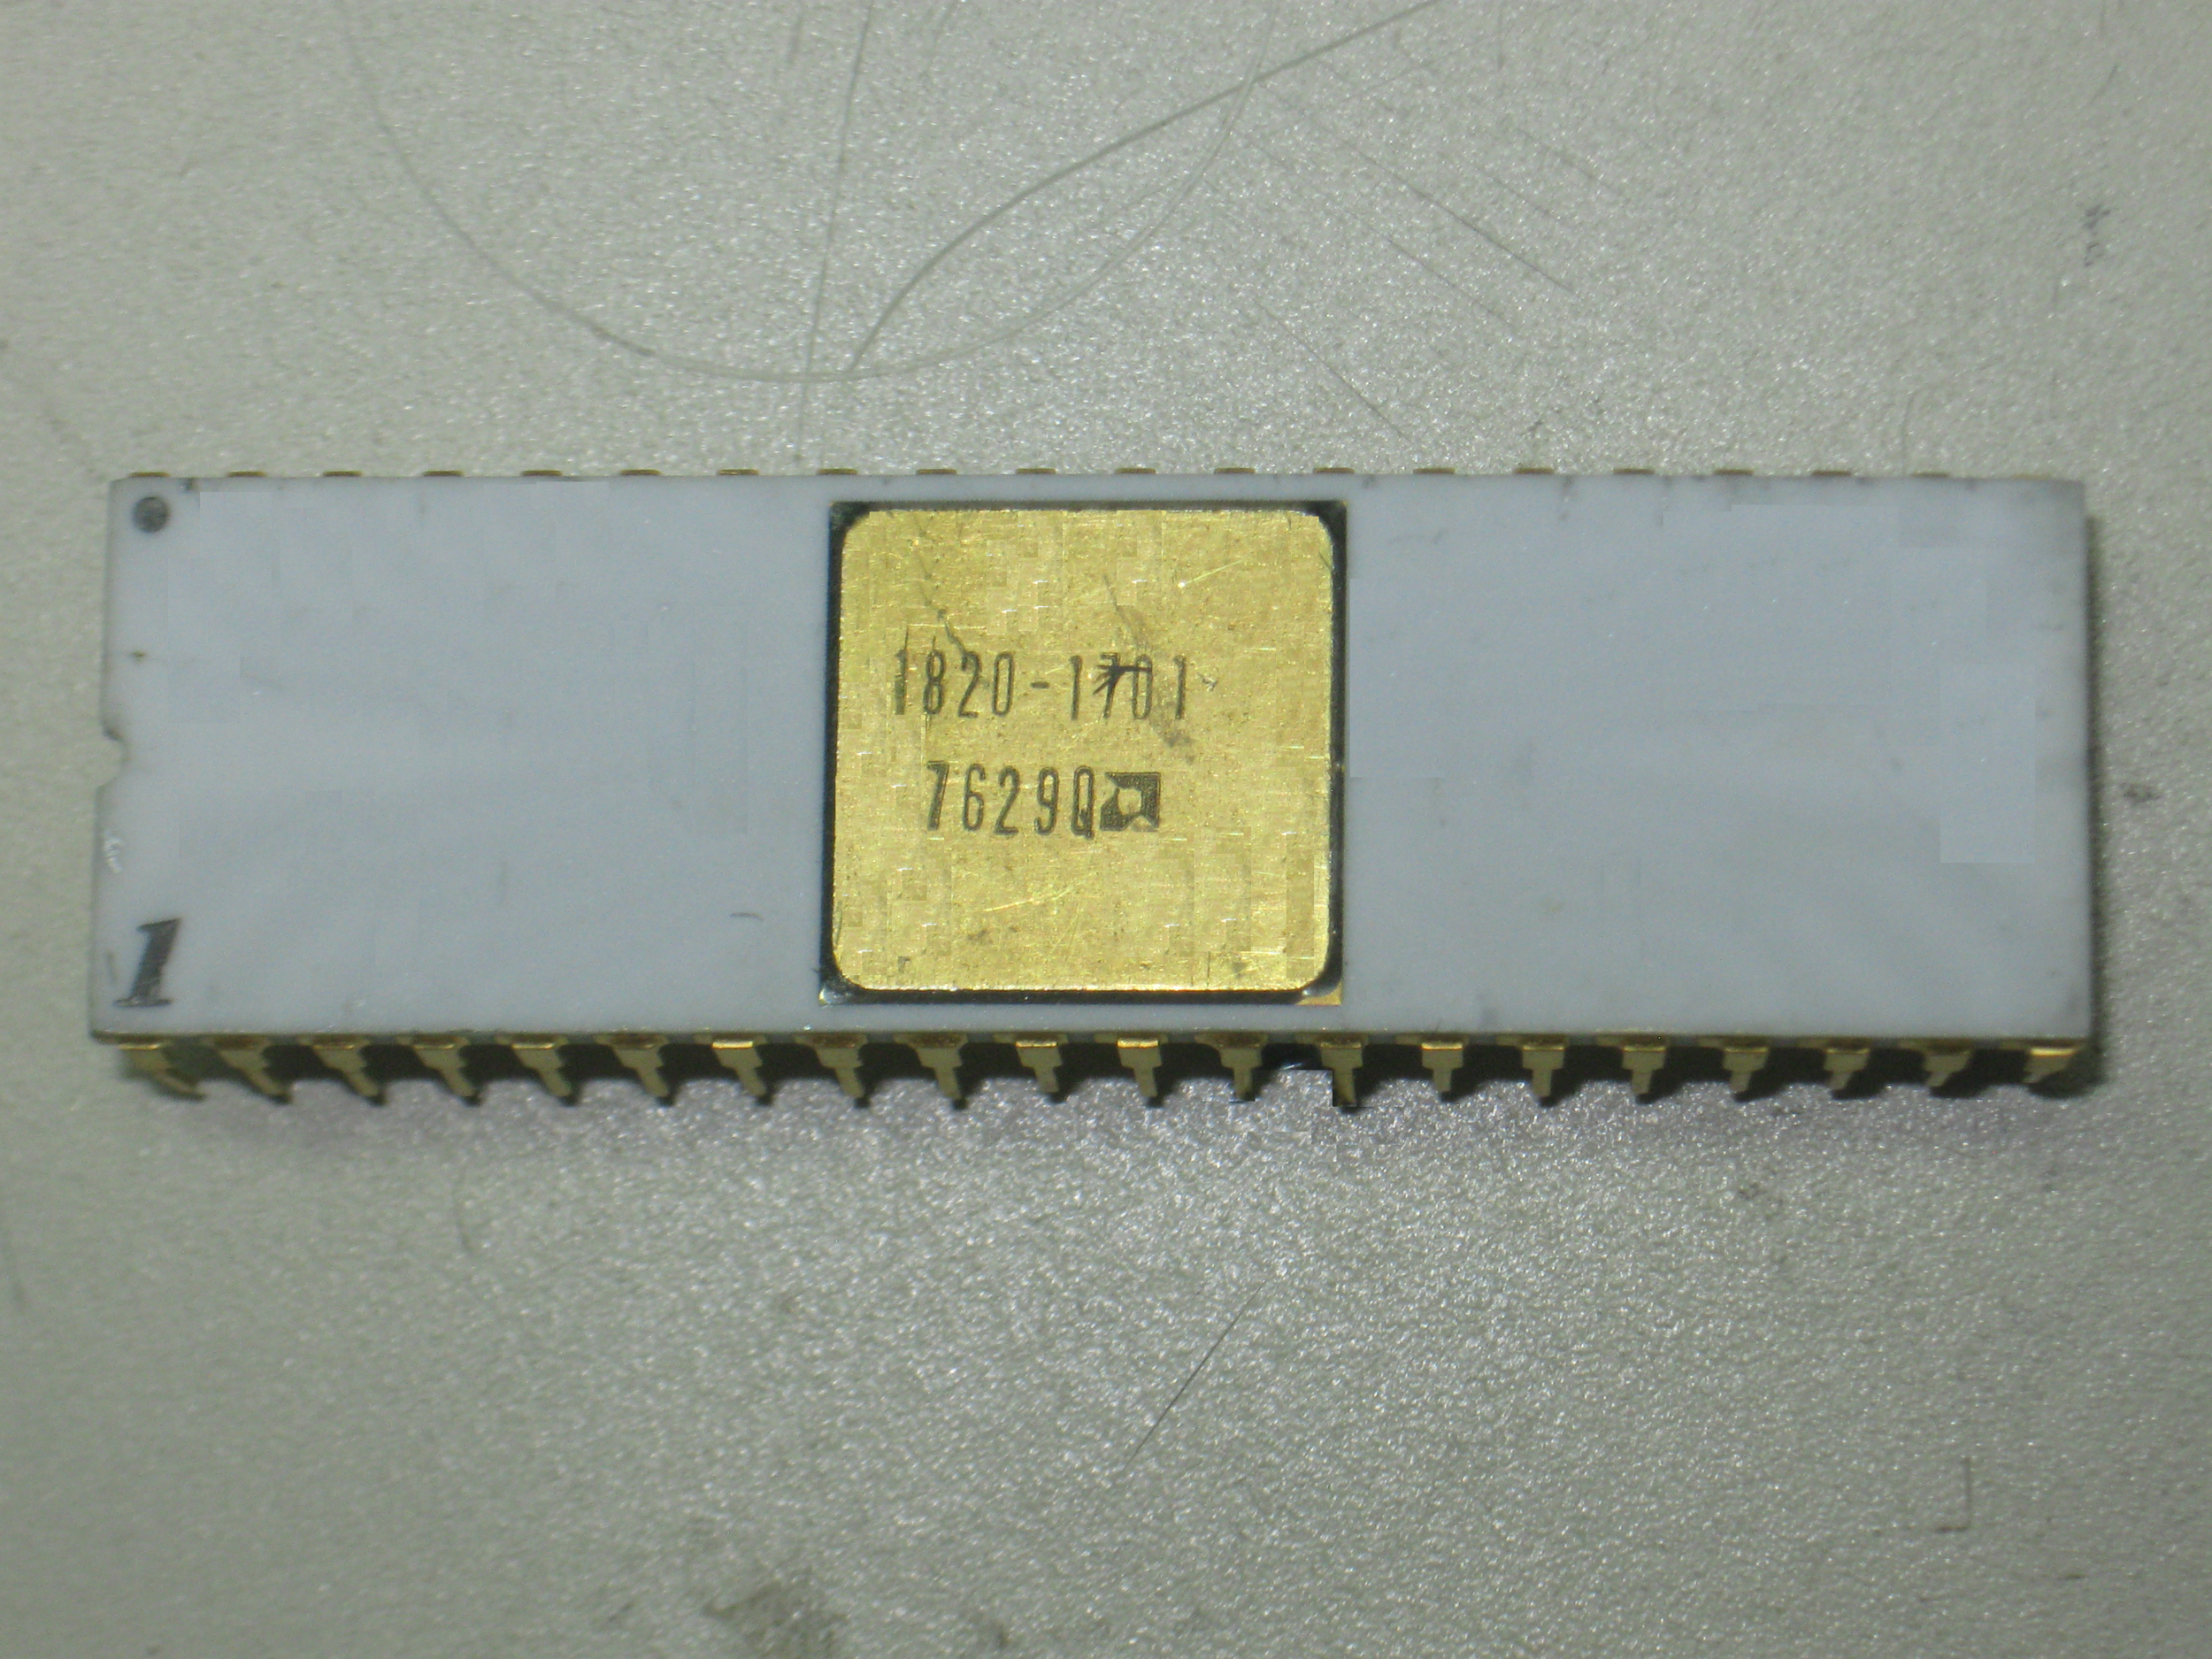 An Intel 8080 microprocessor made by AMD in the 29th week of 1976 for Hewlett-Packard under HP's part number 1820-1701. White ceramic with side welded gold plated pins and gold cover. Pin 1 is pretty obvious, but there is also a dot on pin 40 - odd.